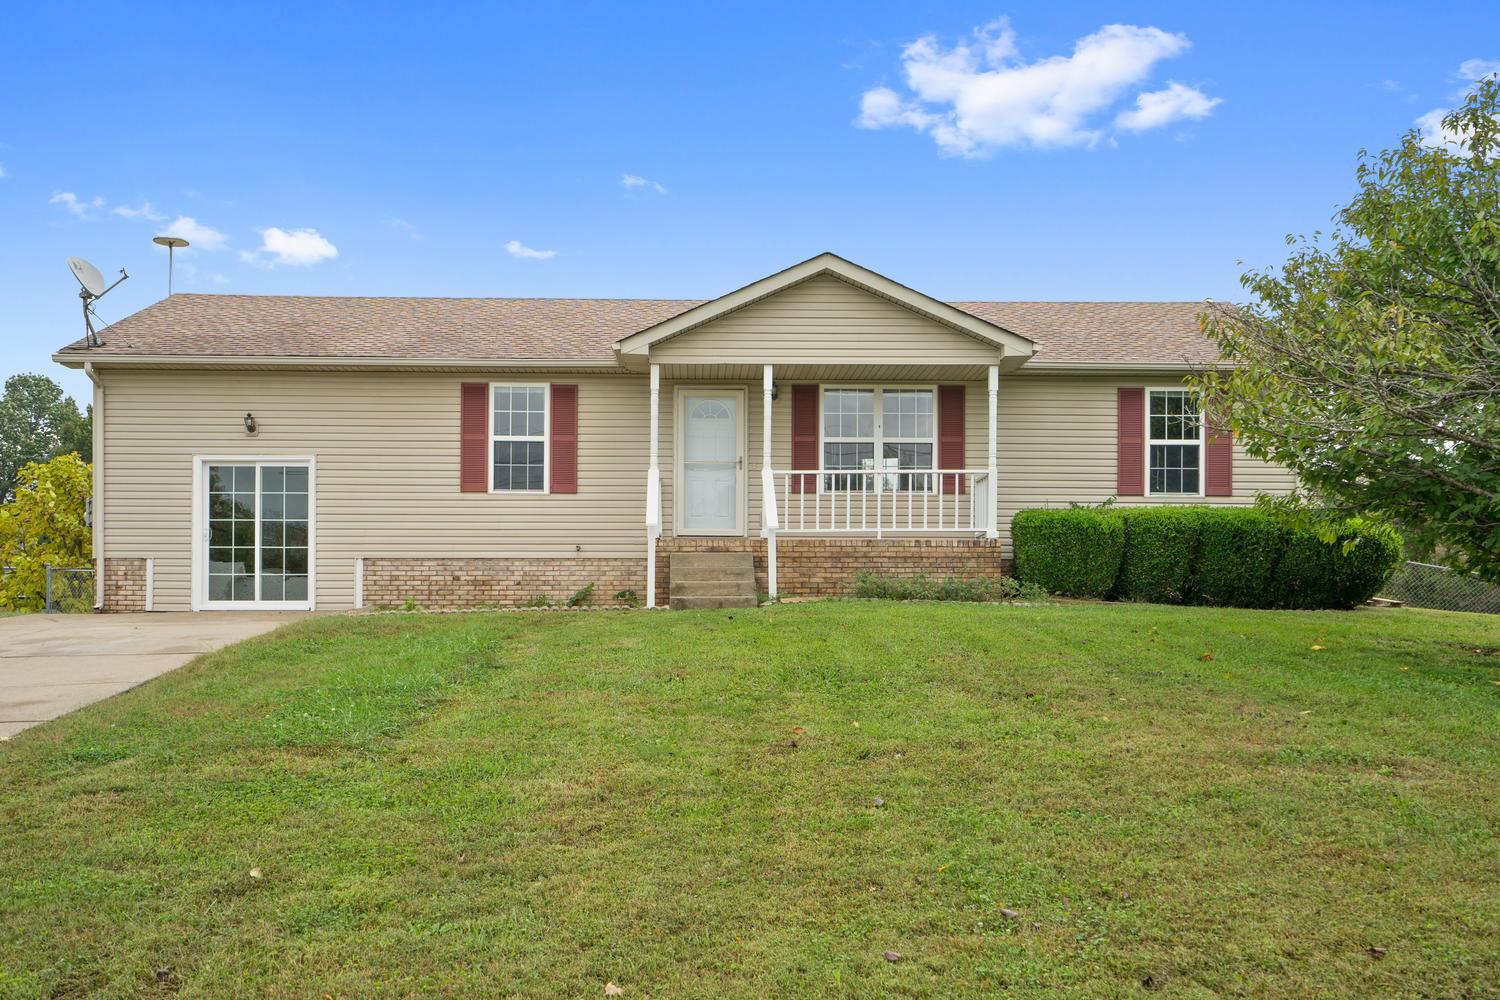 Fort Campbell Kentucky Housing